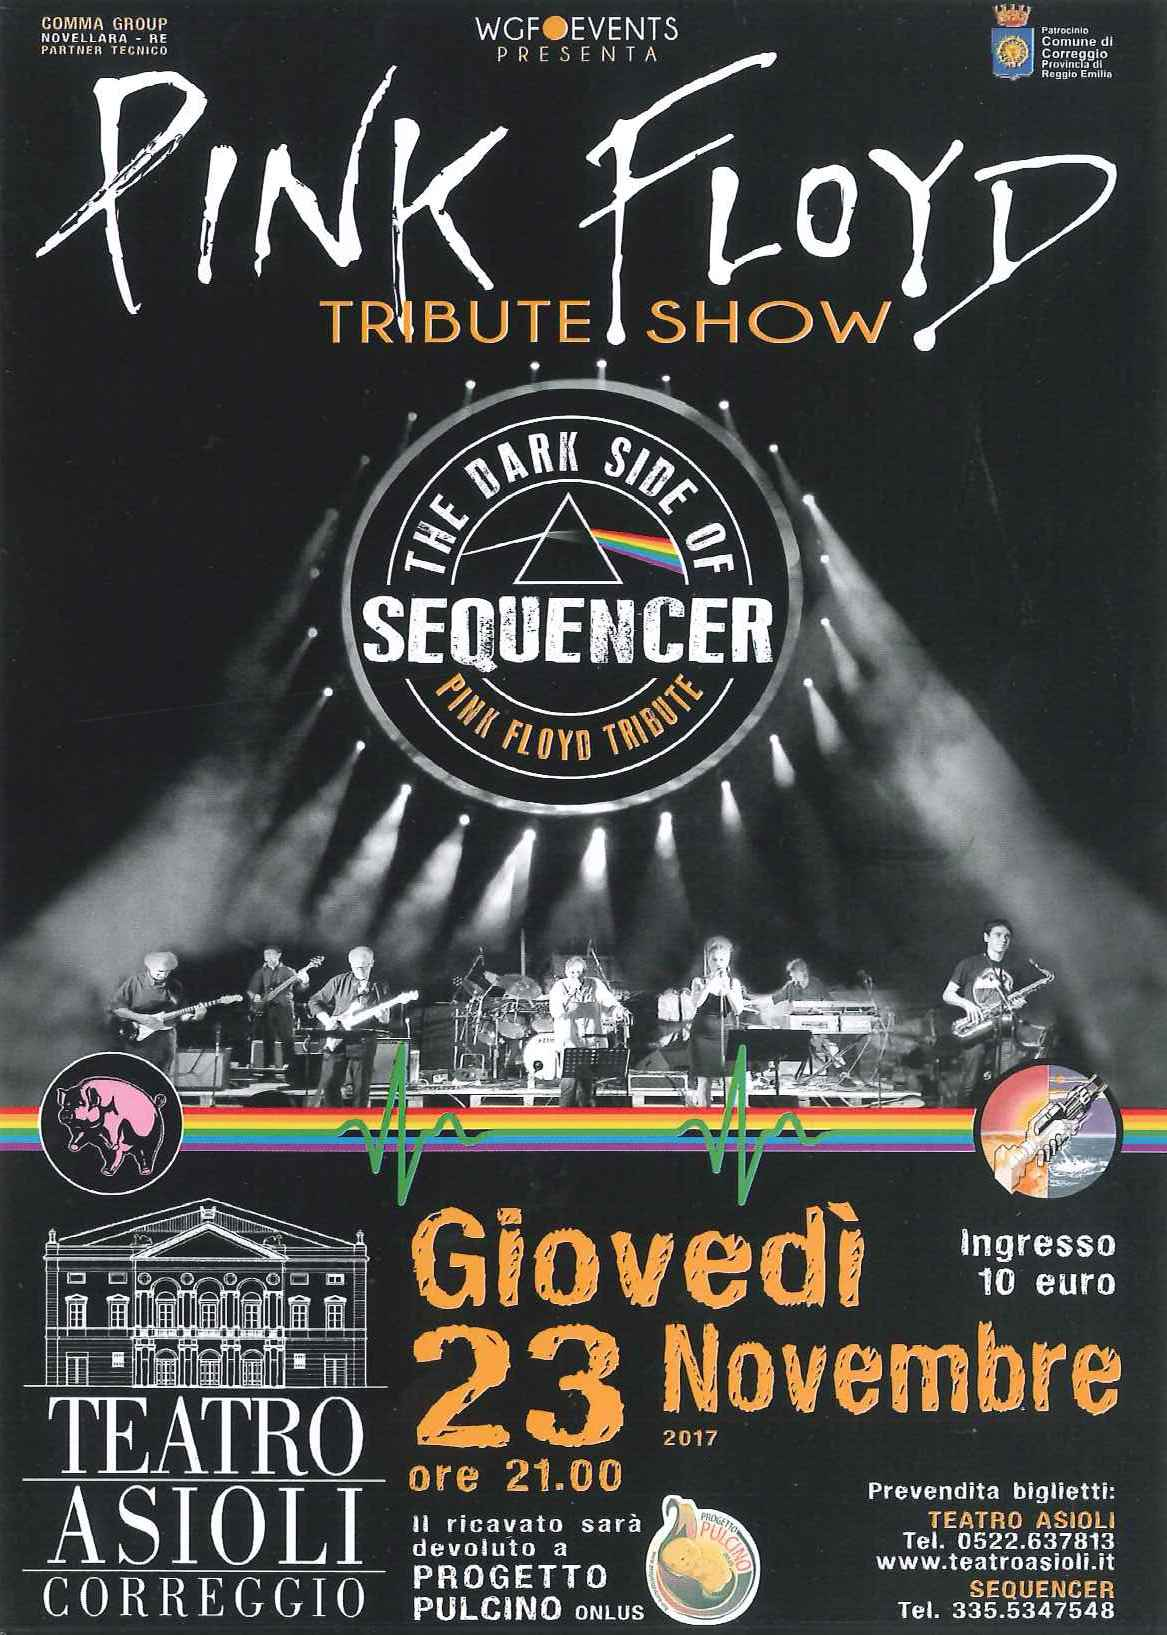 Correggio: I Sequencer portano all'Asilo le musiche dei PINK FLOYD